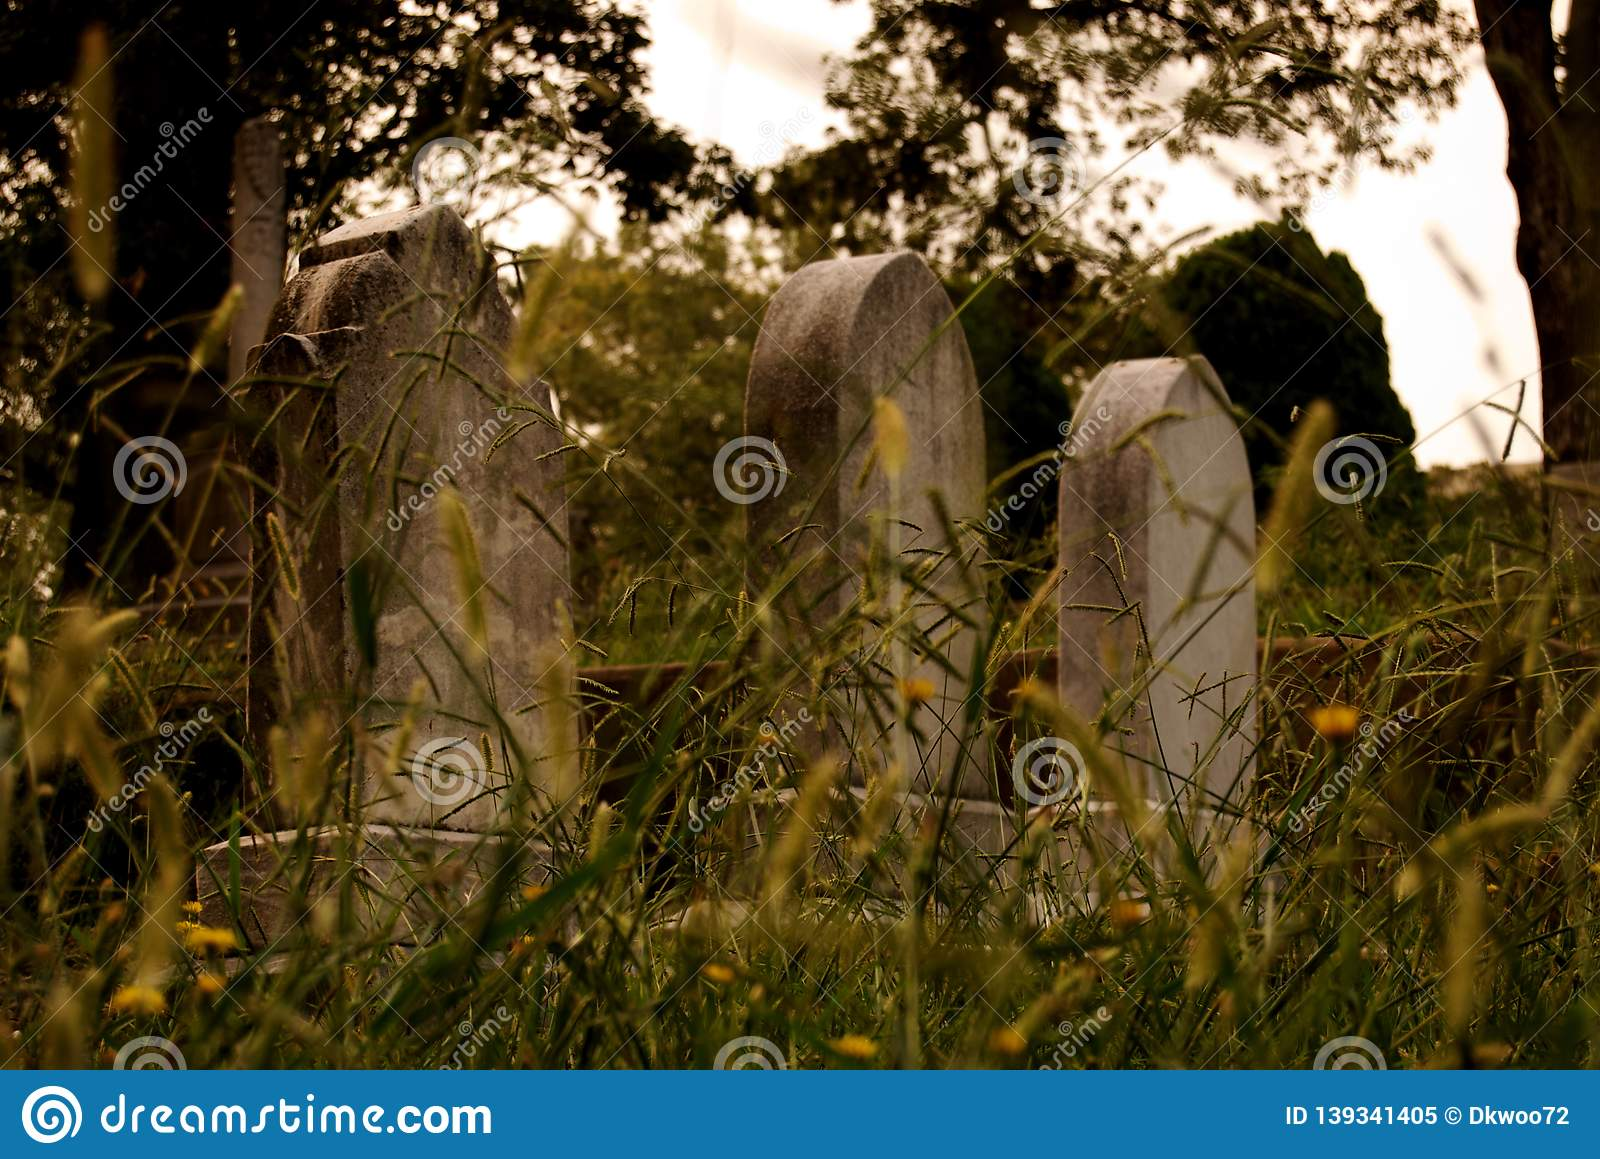 Tombstones among grassy nature